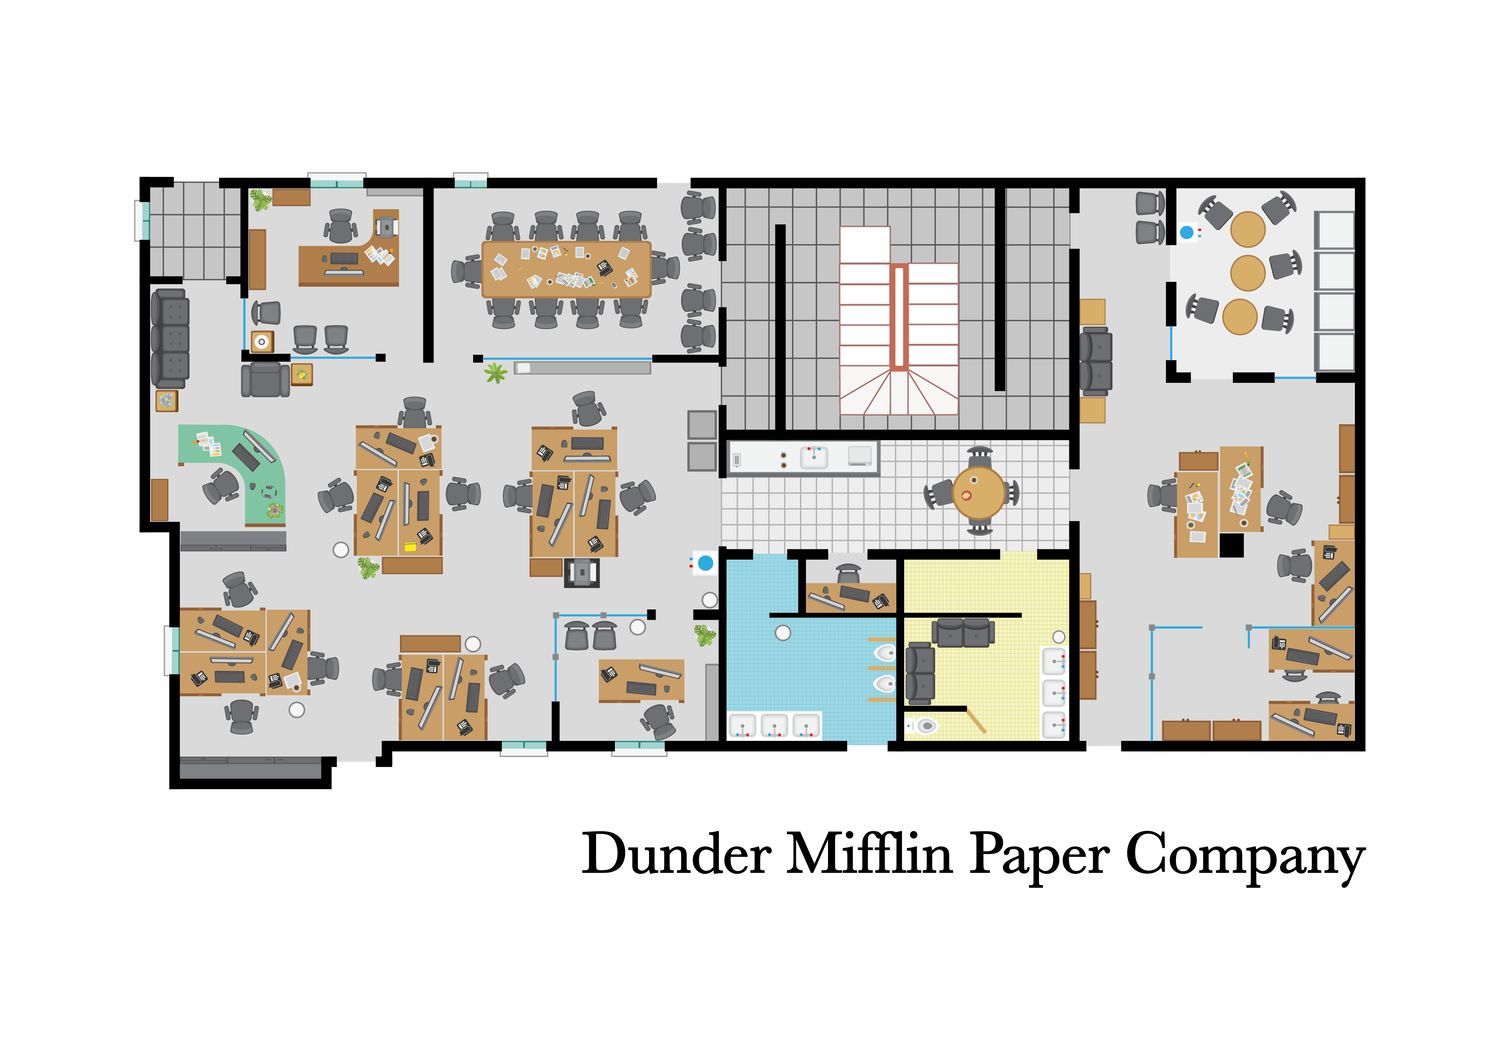 The Office Floor Plan The Office Tv Show Blueprint Dunder Mifflin The Office Layout The Office Tv Show Us Floor Plans By Matilda